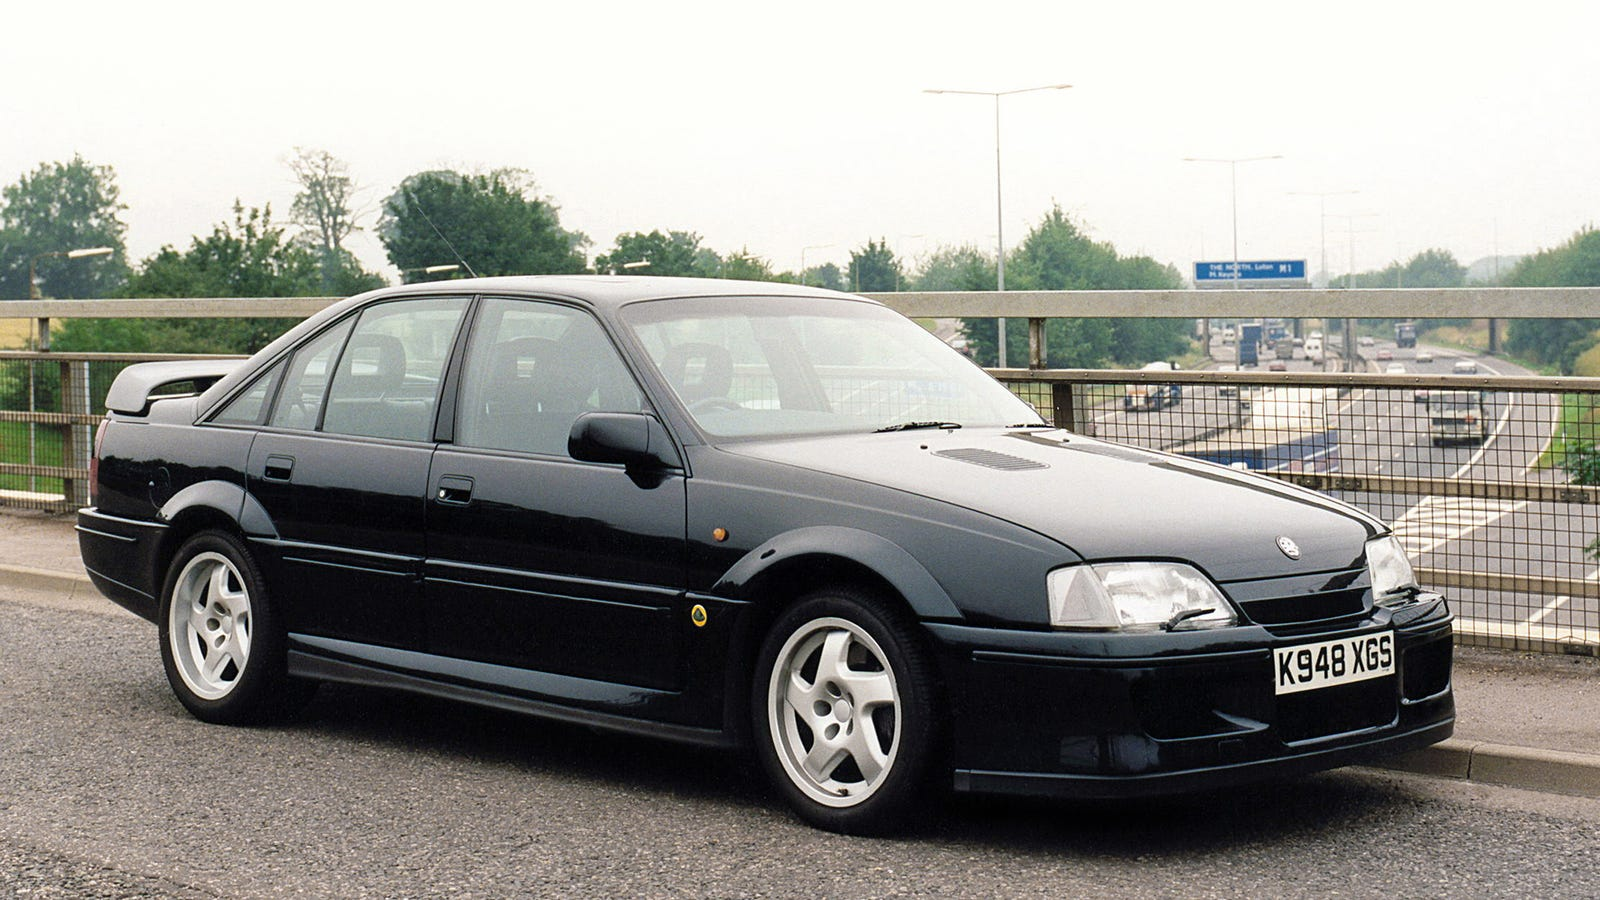 The Most Badass Sedan of the 1990s Wasn't a BMW